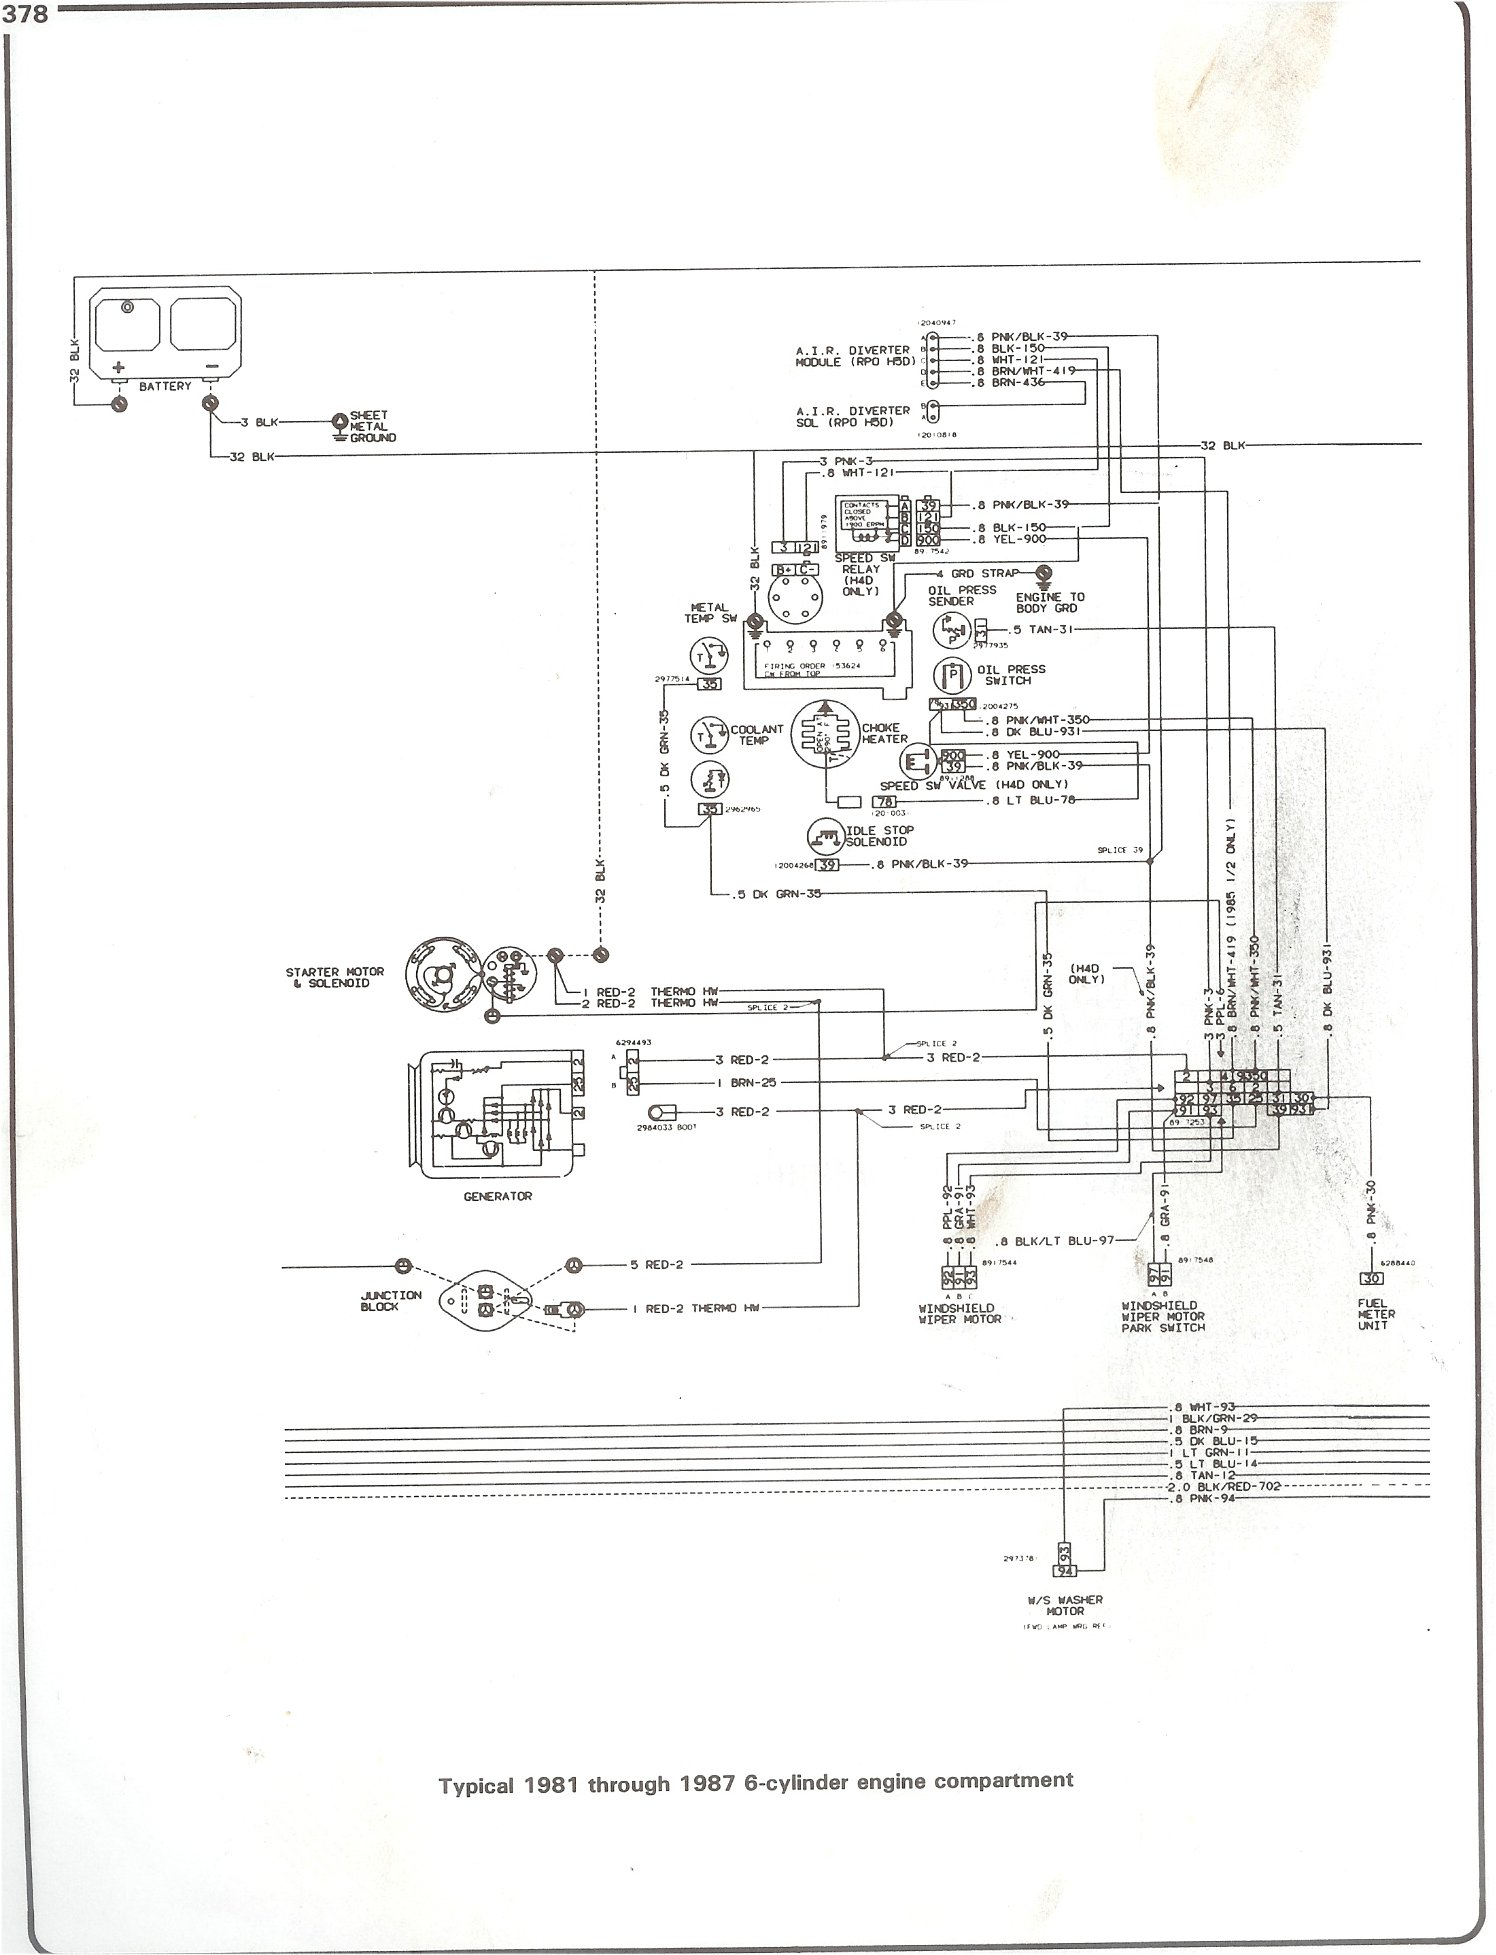 hight resolution of 1969 corvette dash wiring diagram on 1973 camaro fuse box diagram gm fuse block diagram 1973